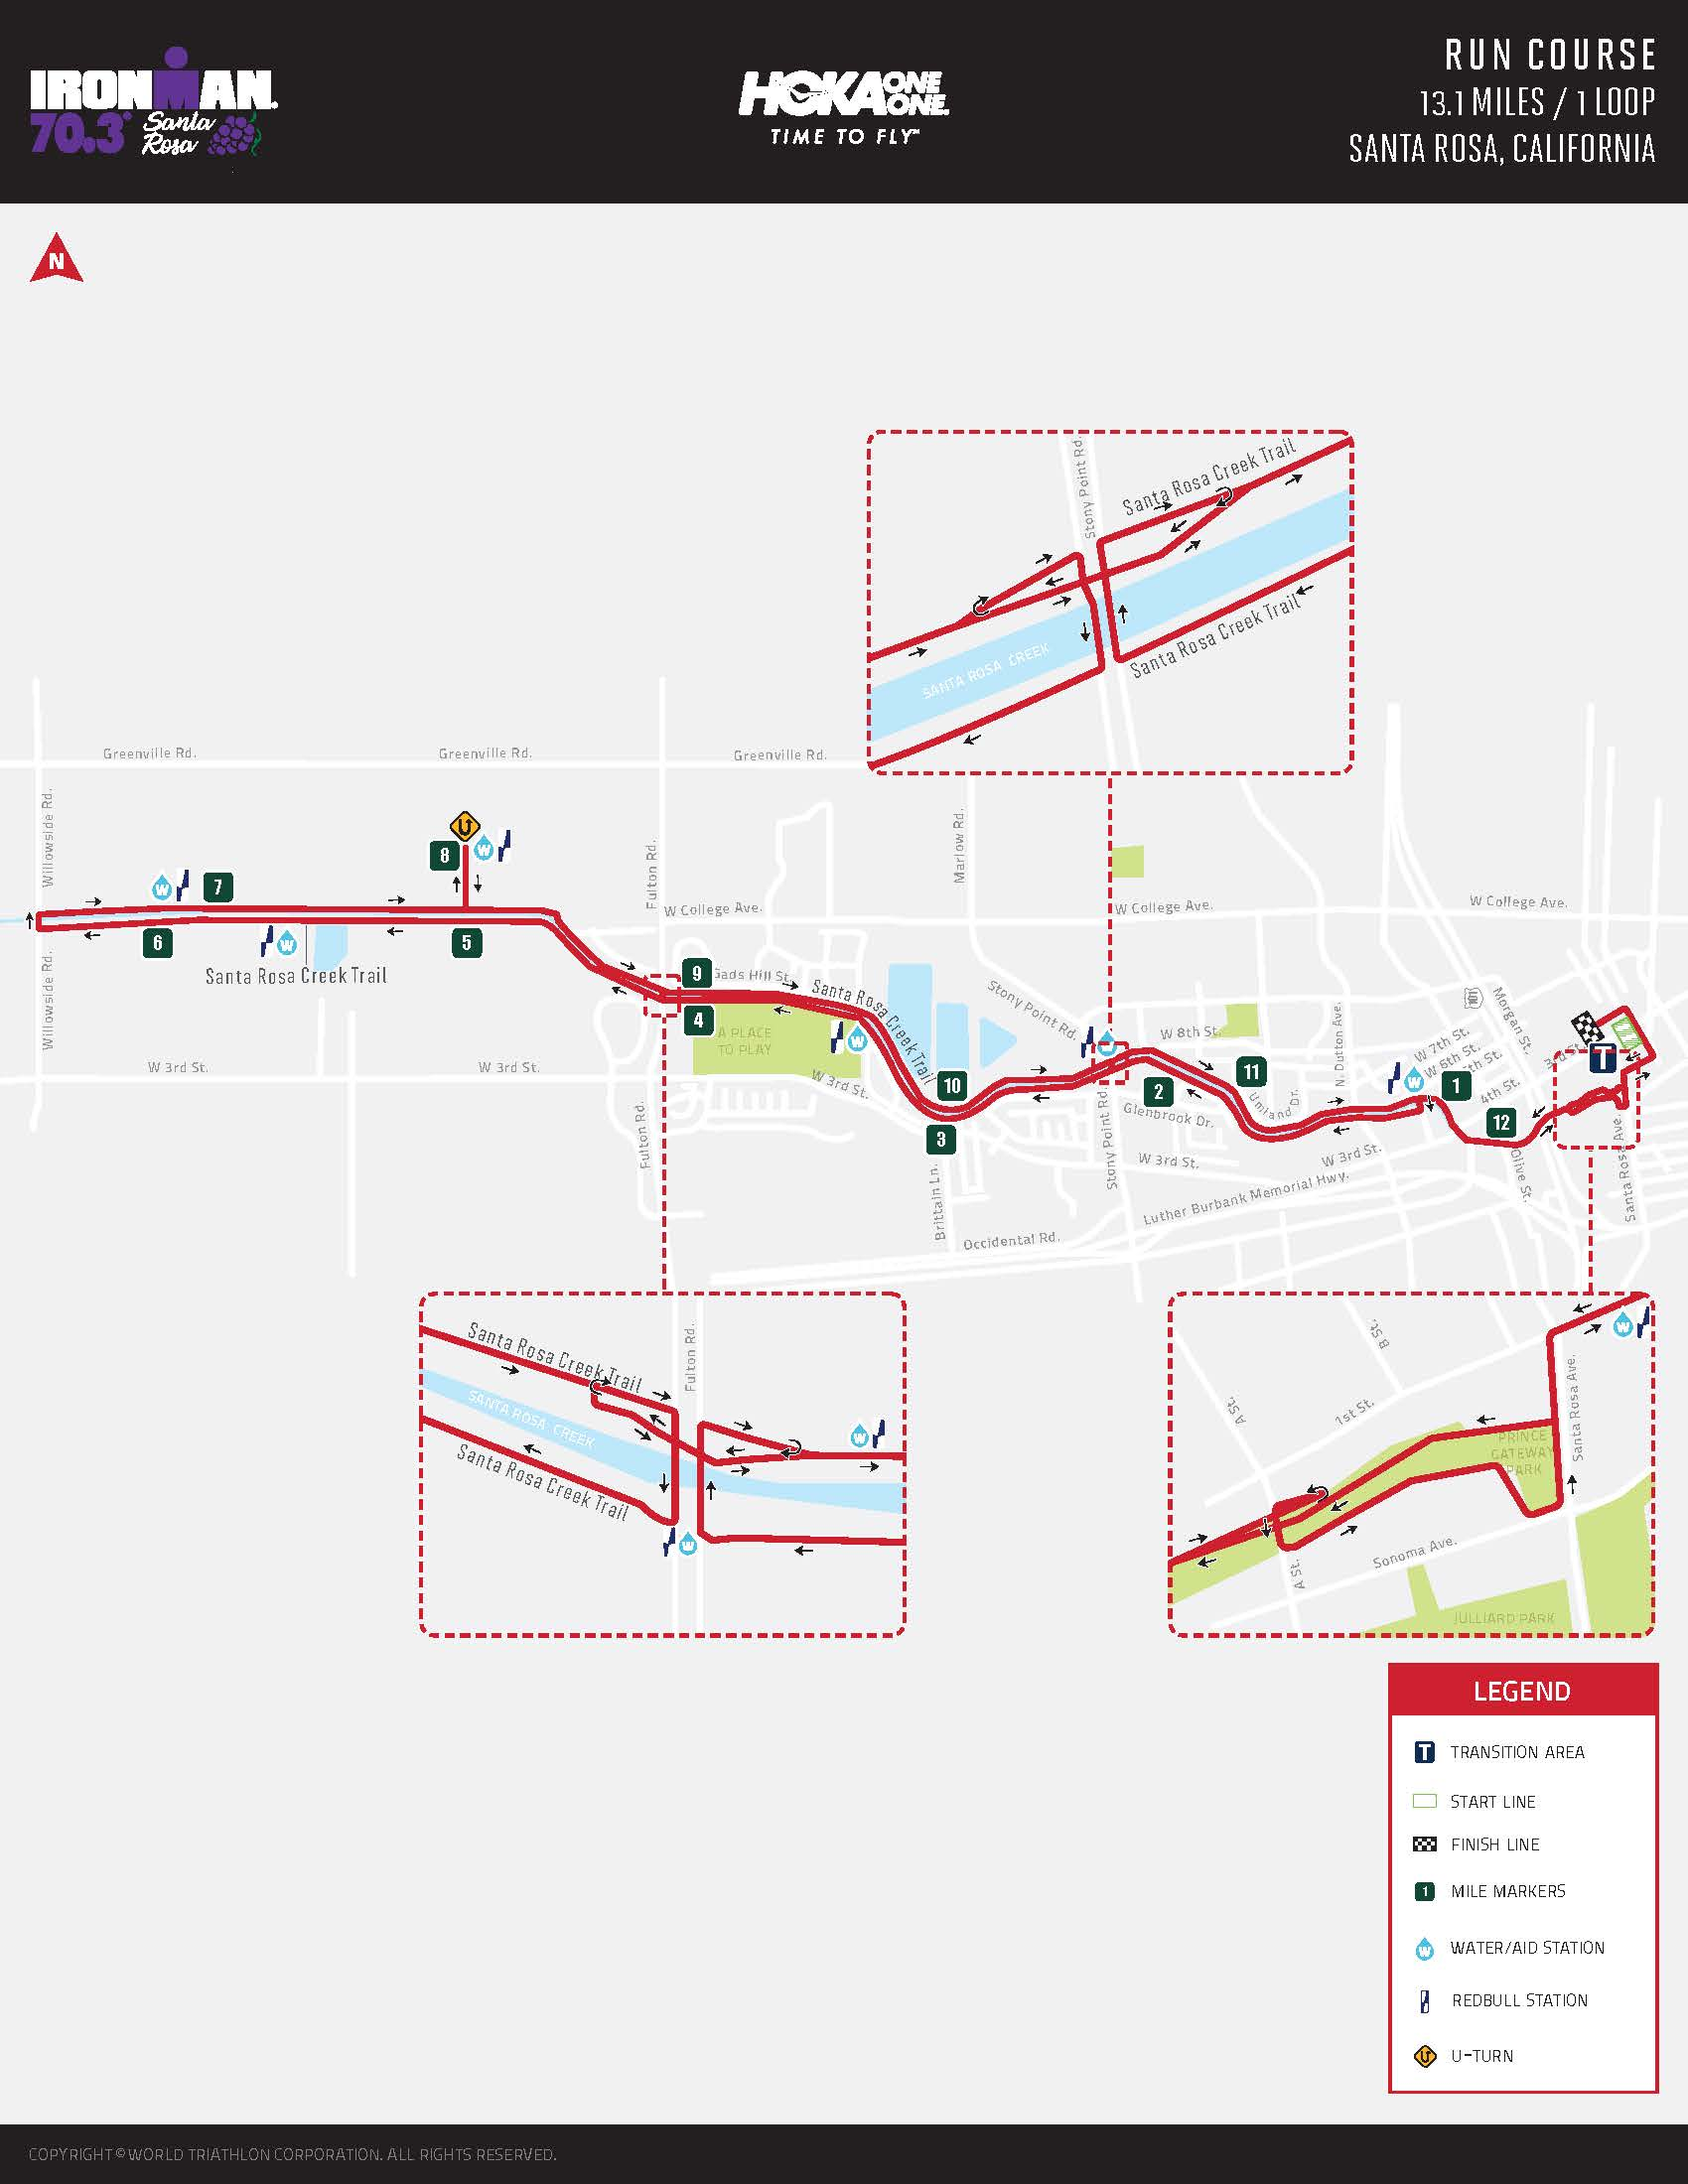 IRONMAN 70.3_2020_Run Course Map Page 1